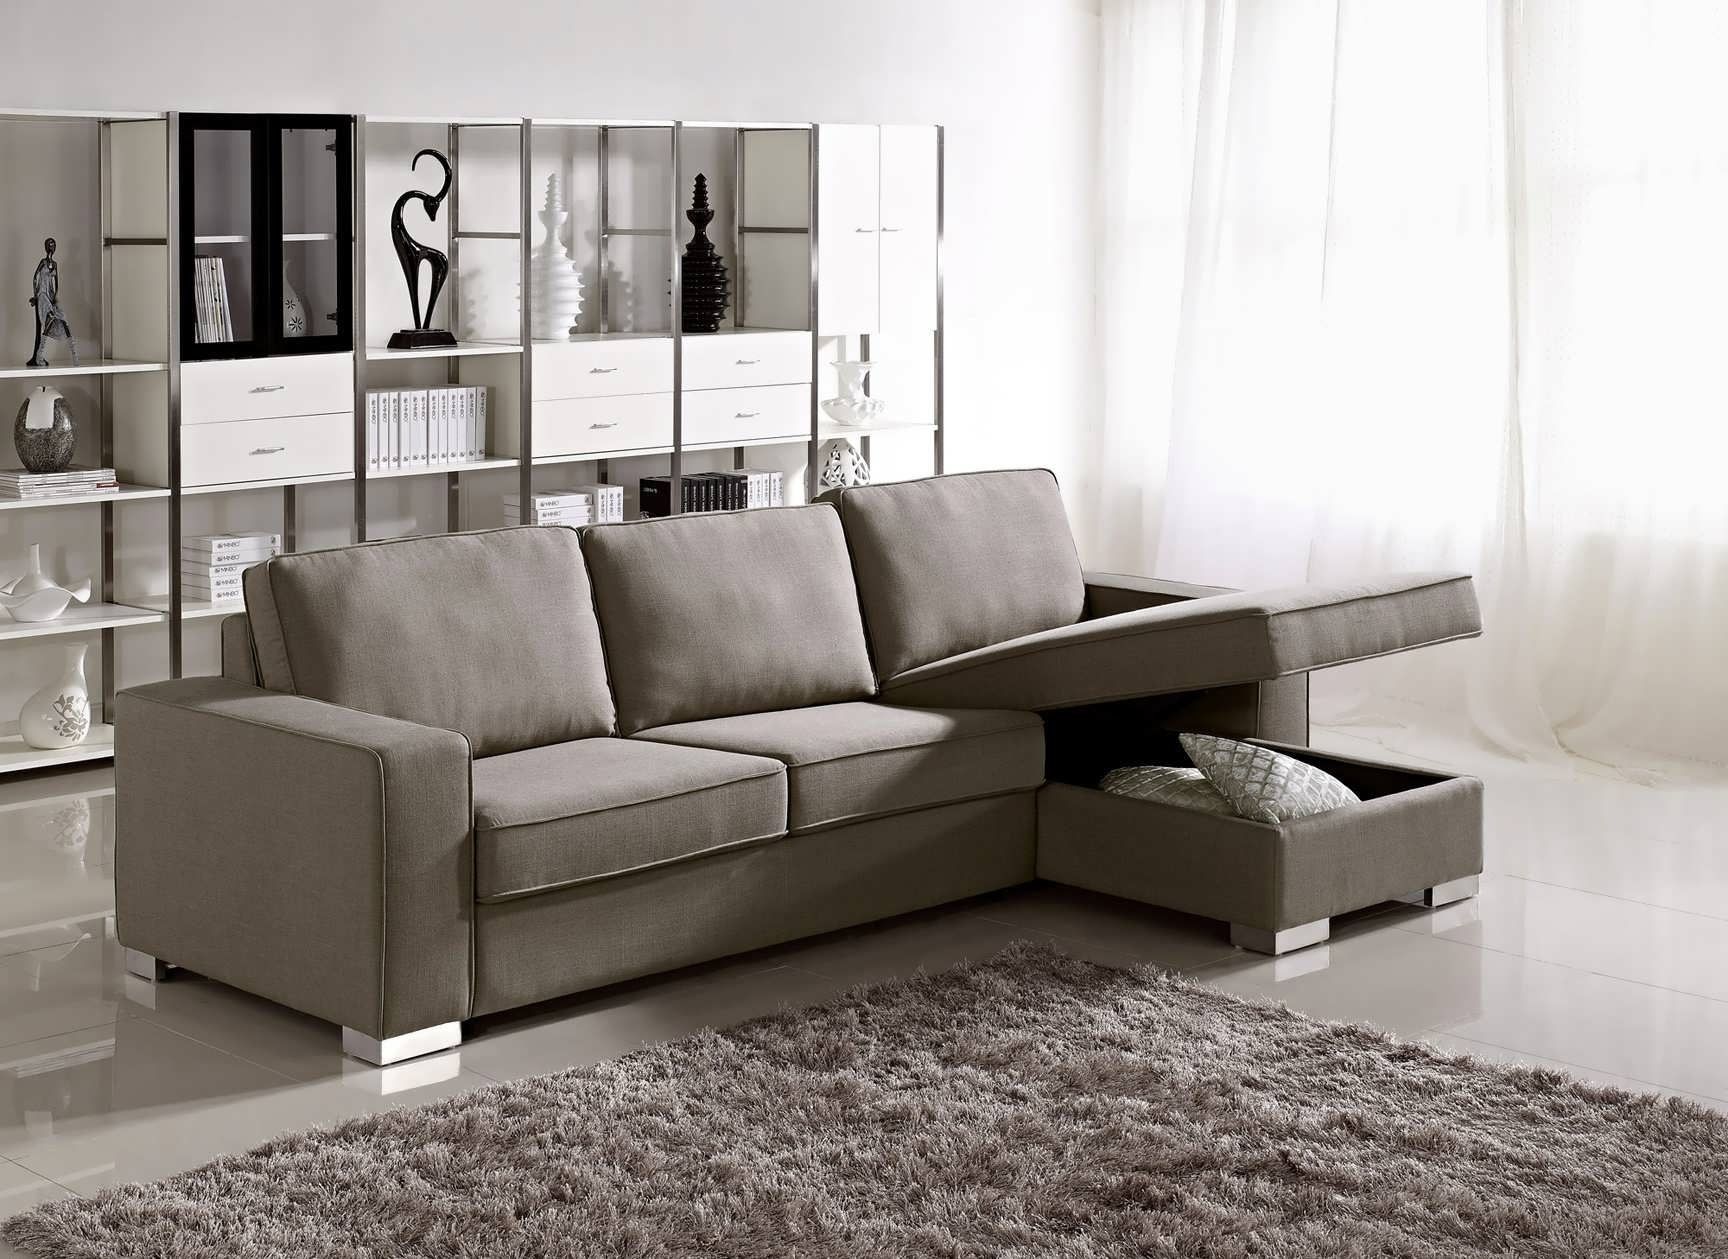 Buy Sectional Sofa Ottawa Small With Reversible Chaise Canada Sofas Within Sectional Sofas At Bc Canada (View 6 of 10)